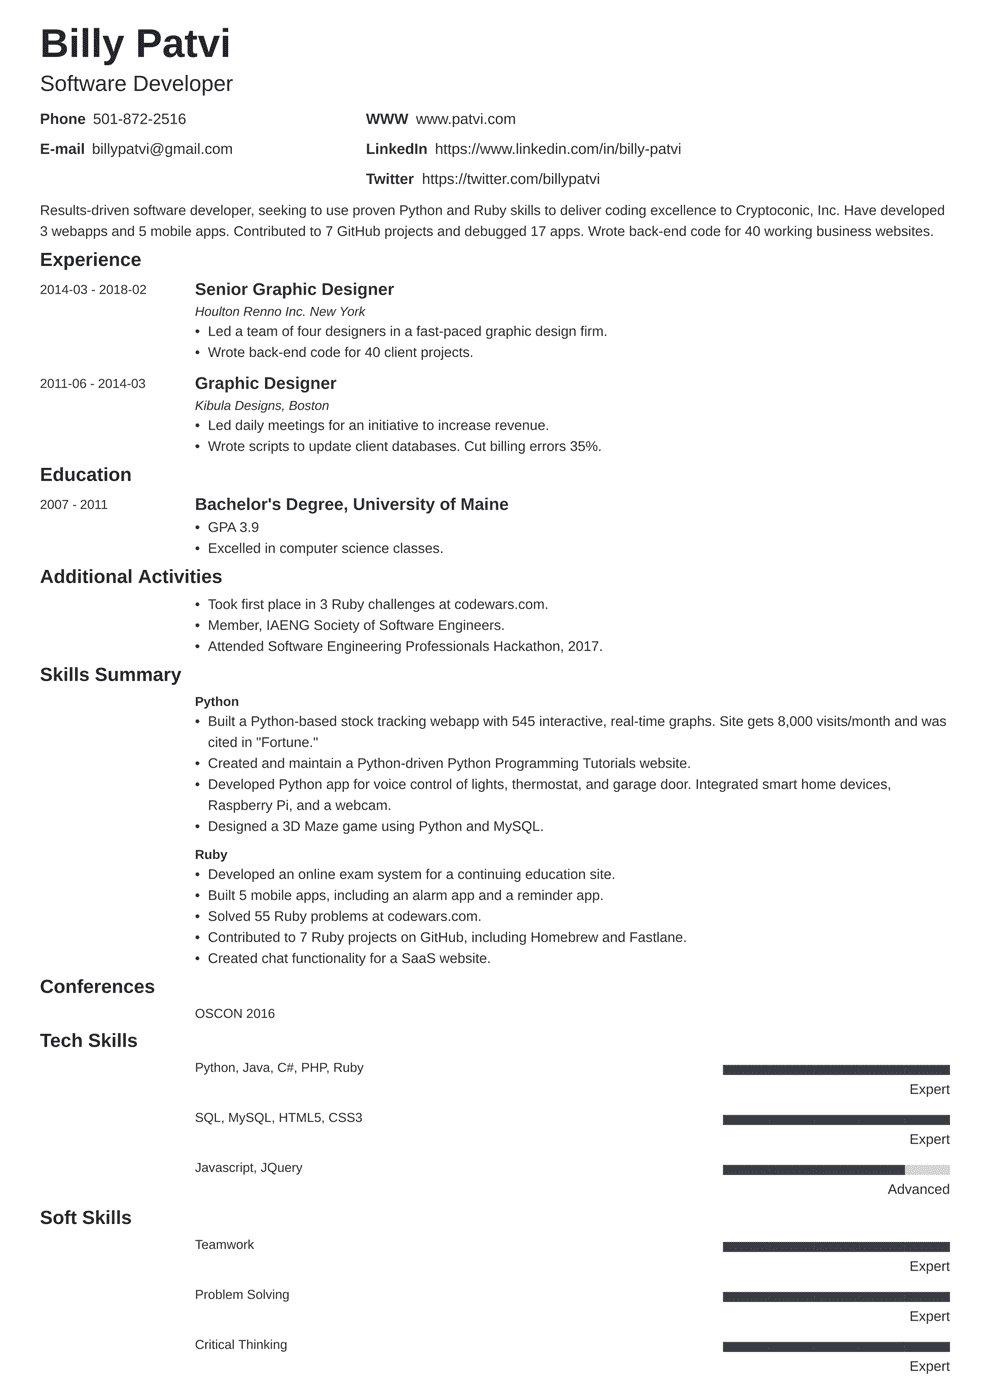 Career Change Resume Samples & Template